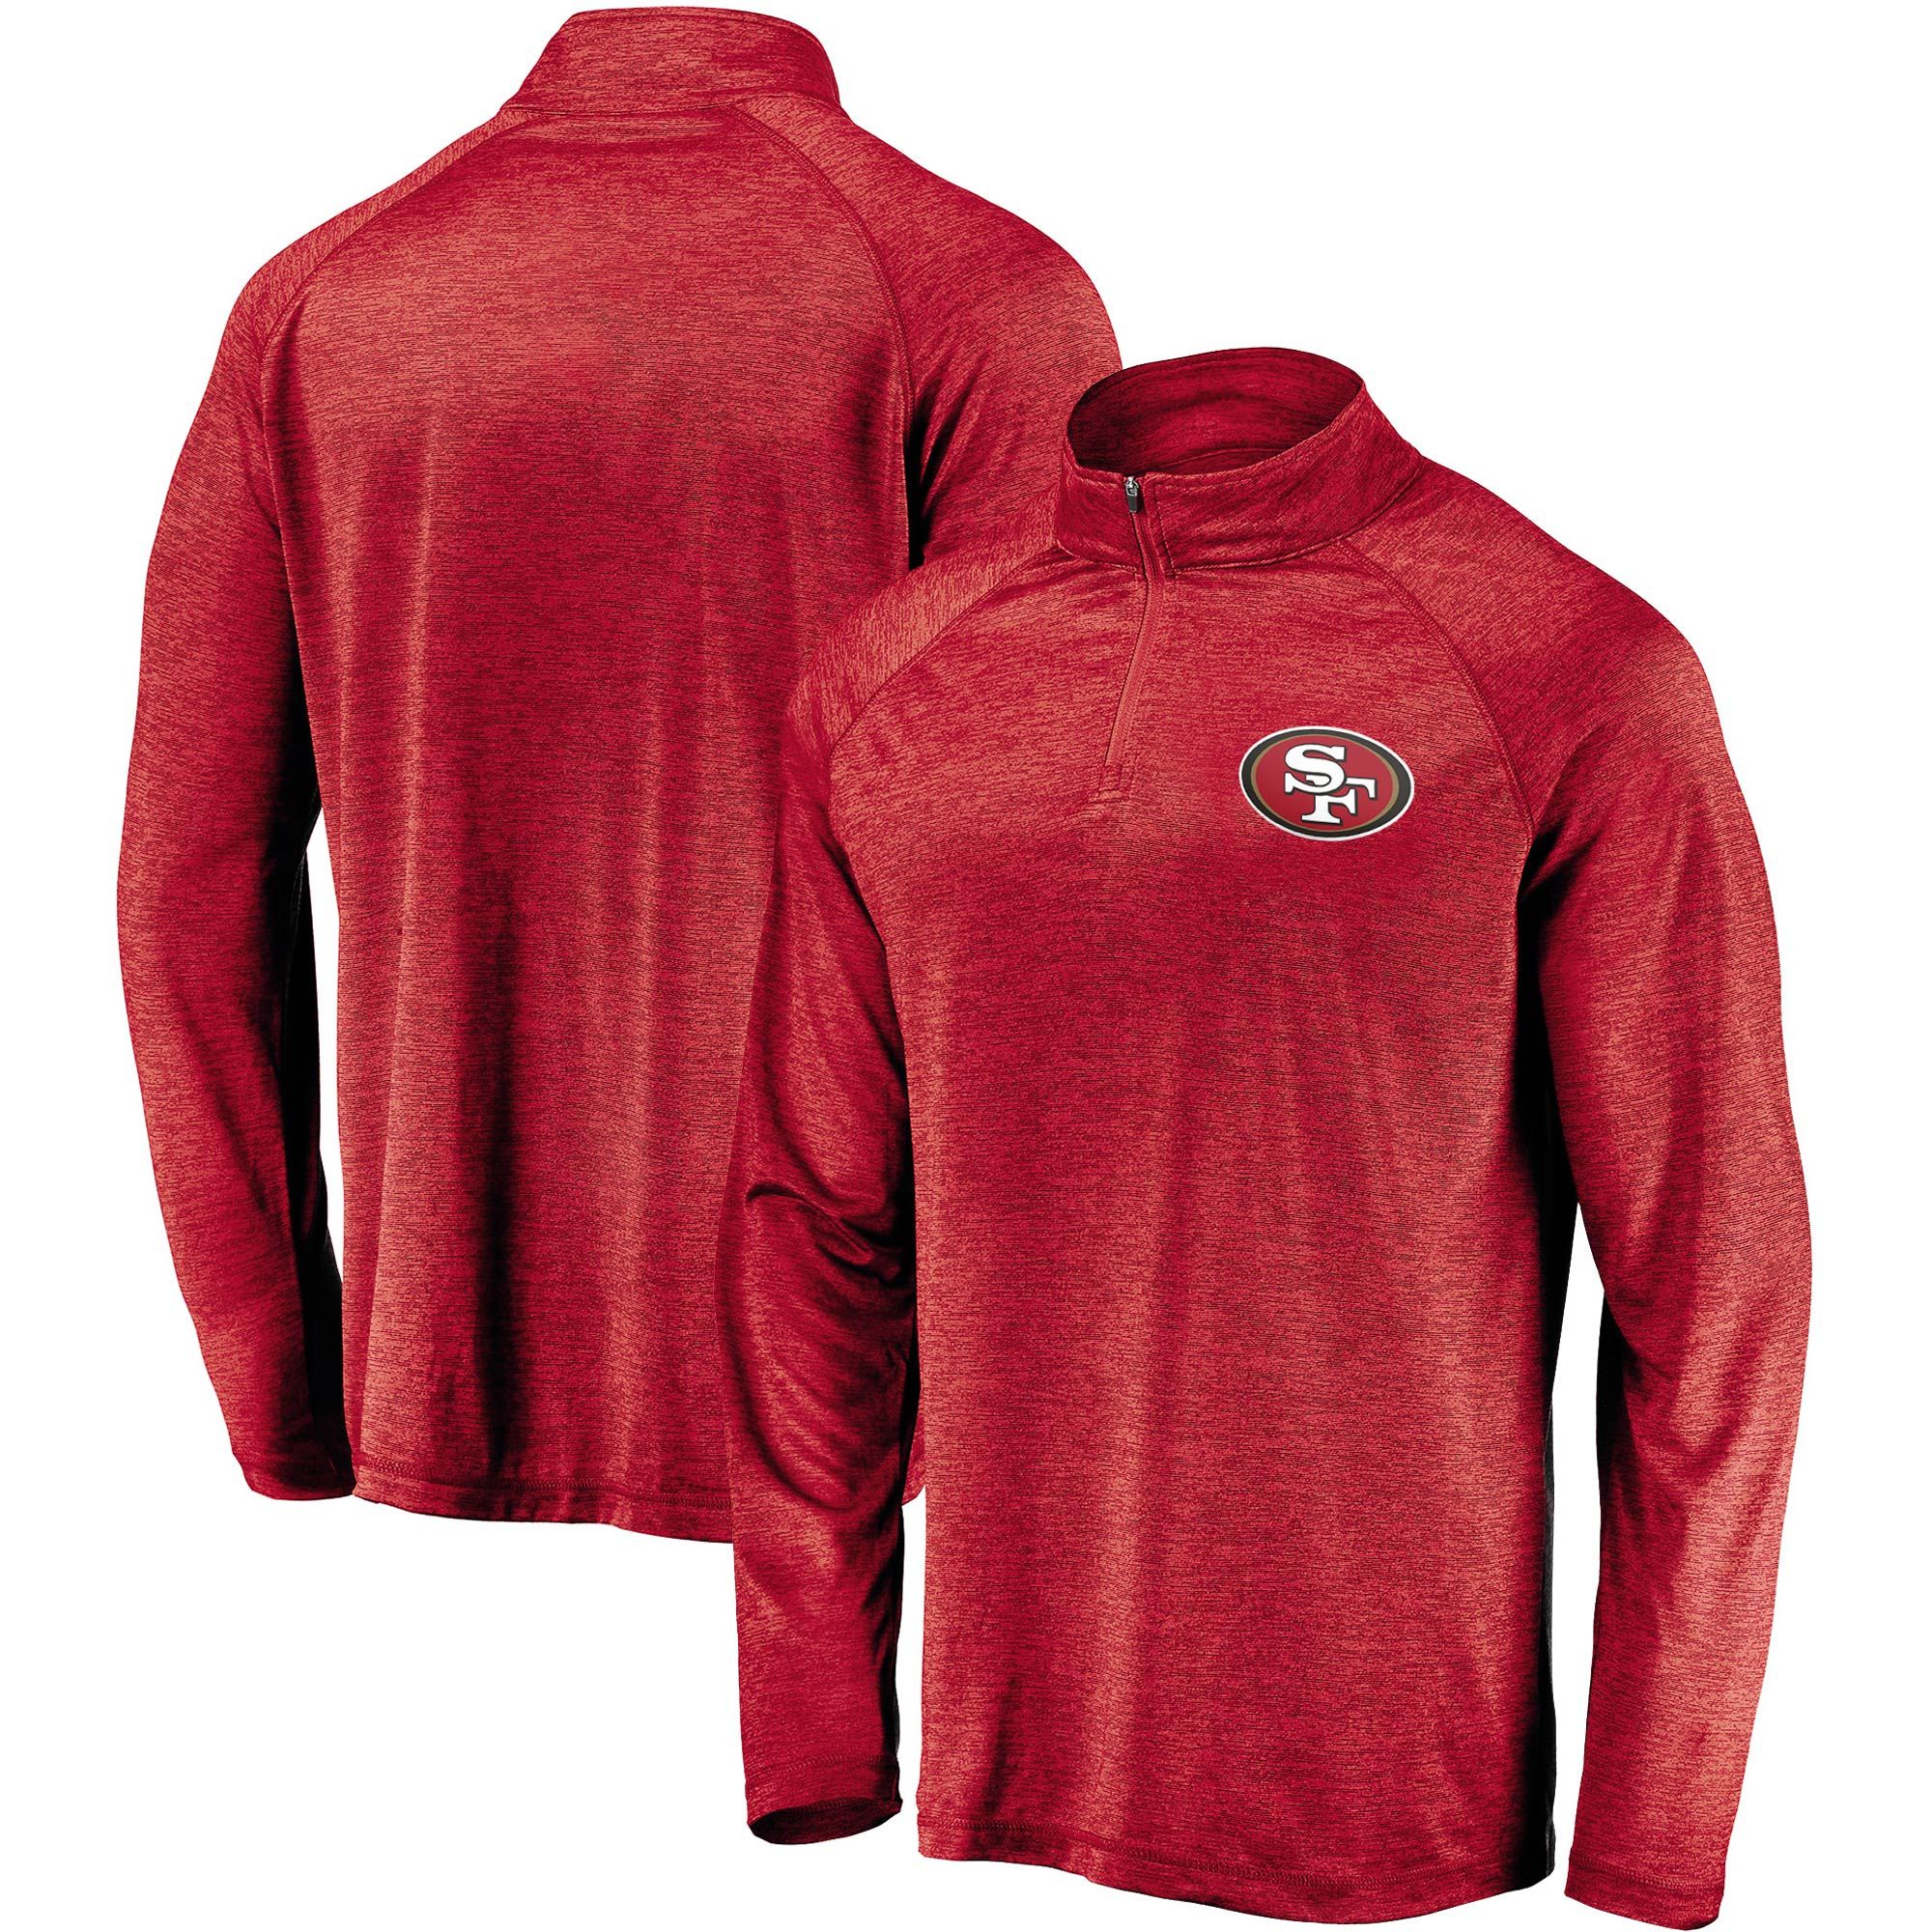 San Francisco 49ers NFL Pro Line by Fanatics Branded Striated Primary Logo Raglan Quarter-Zip Pullover Jacket - Scarlet